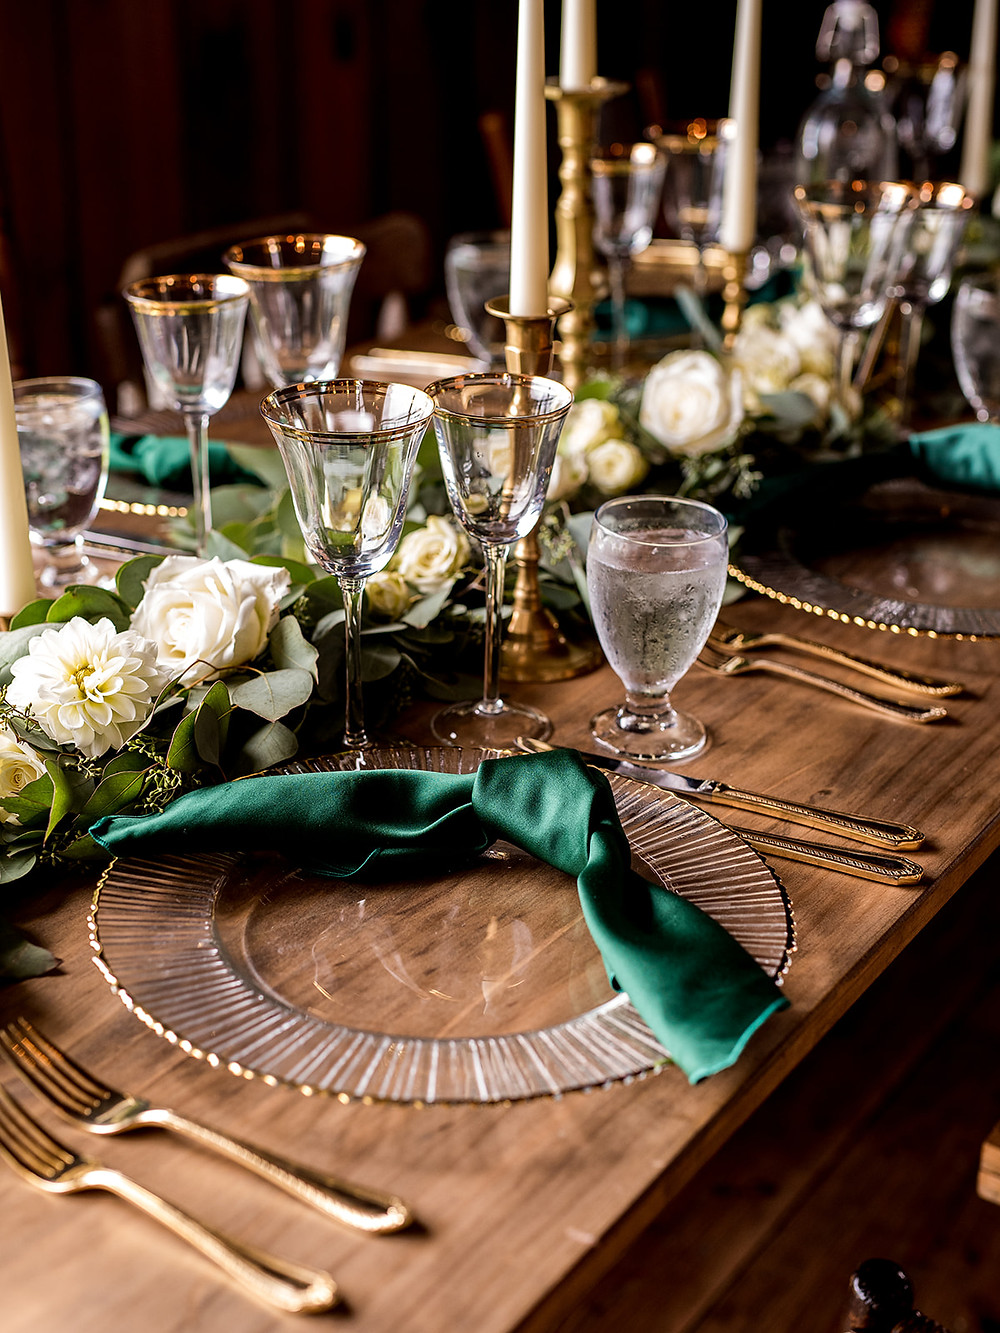 Wedding tabletop decor: Whimsically Rustic Wedding at Grace & Gratitude with vintage decor by Pretty Little Vintage Co.